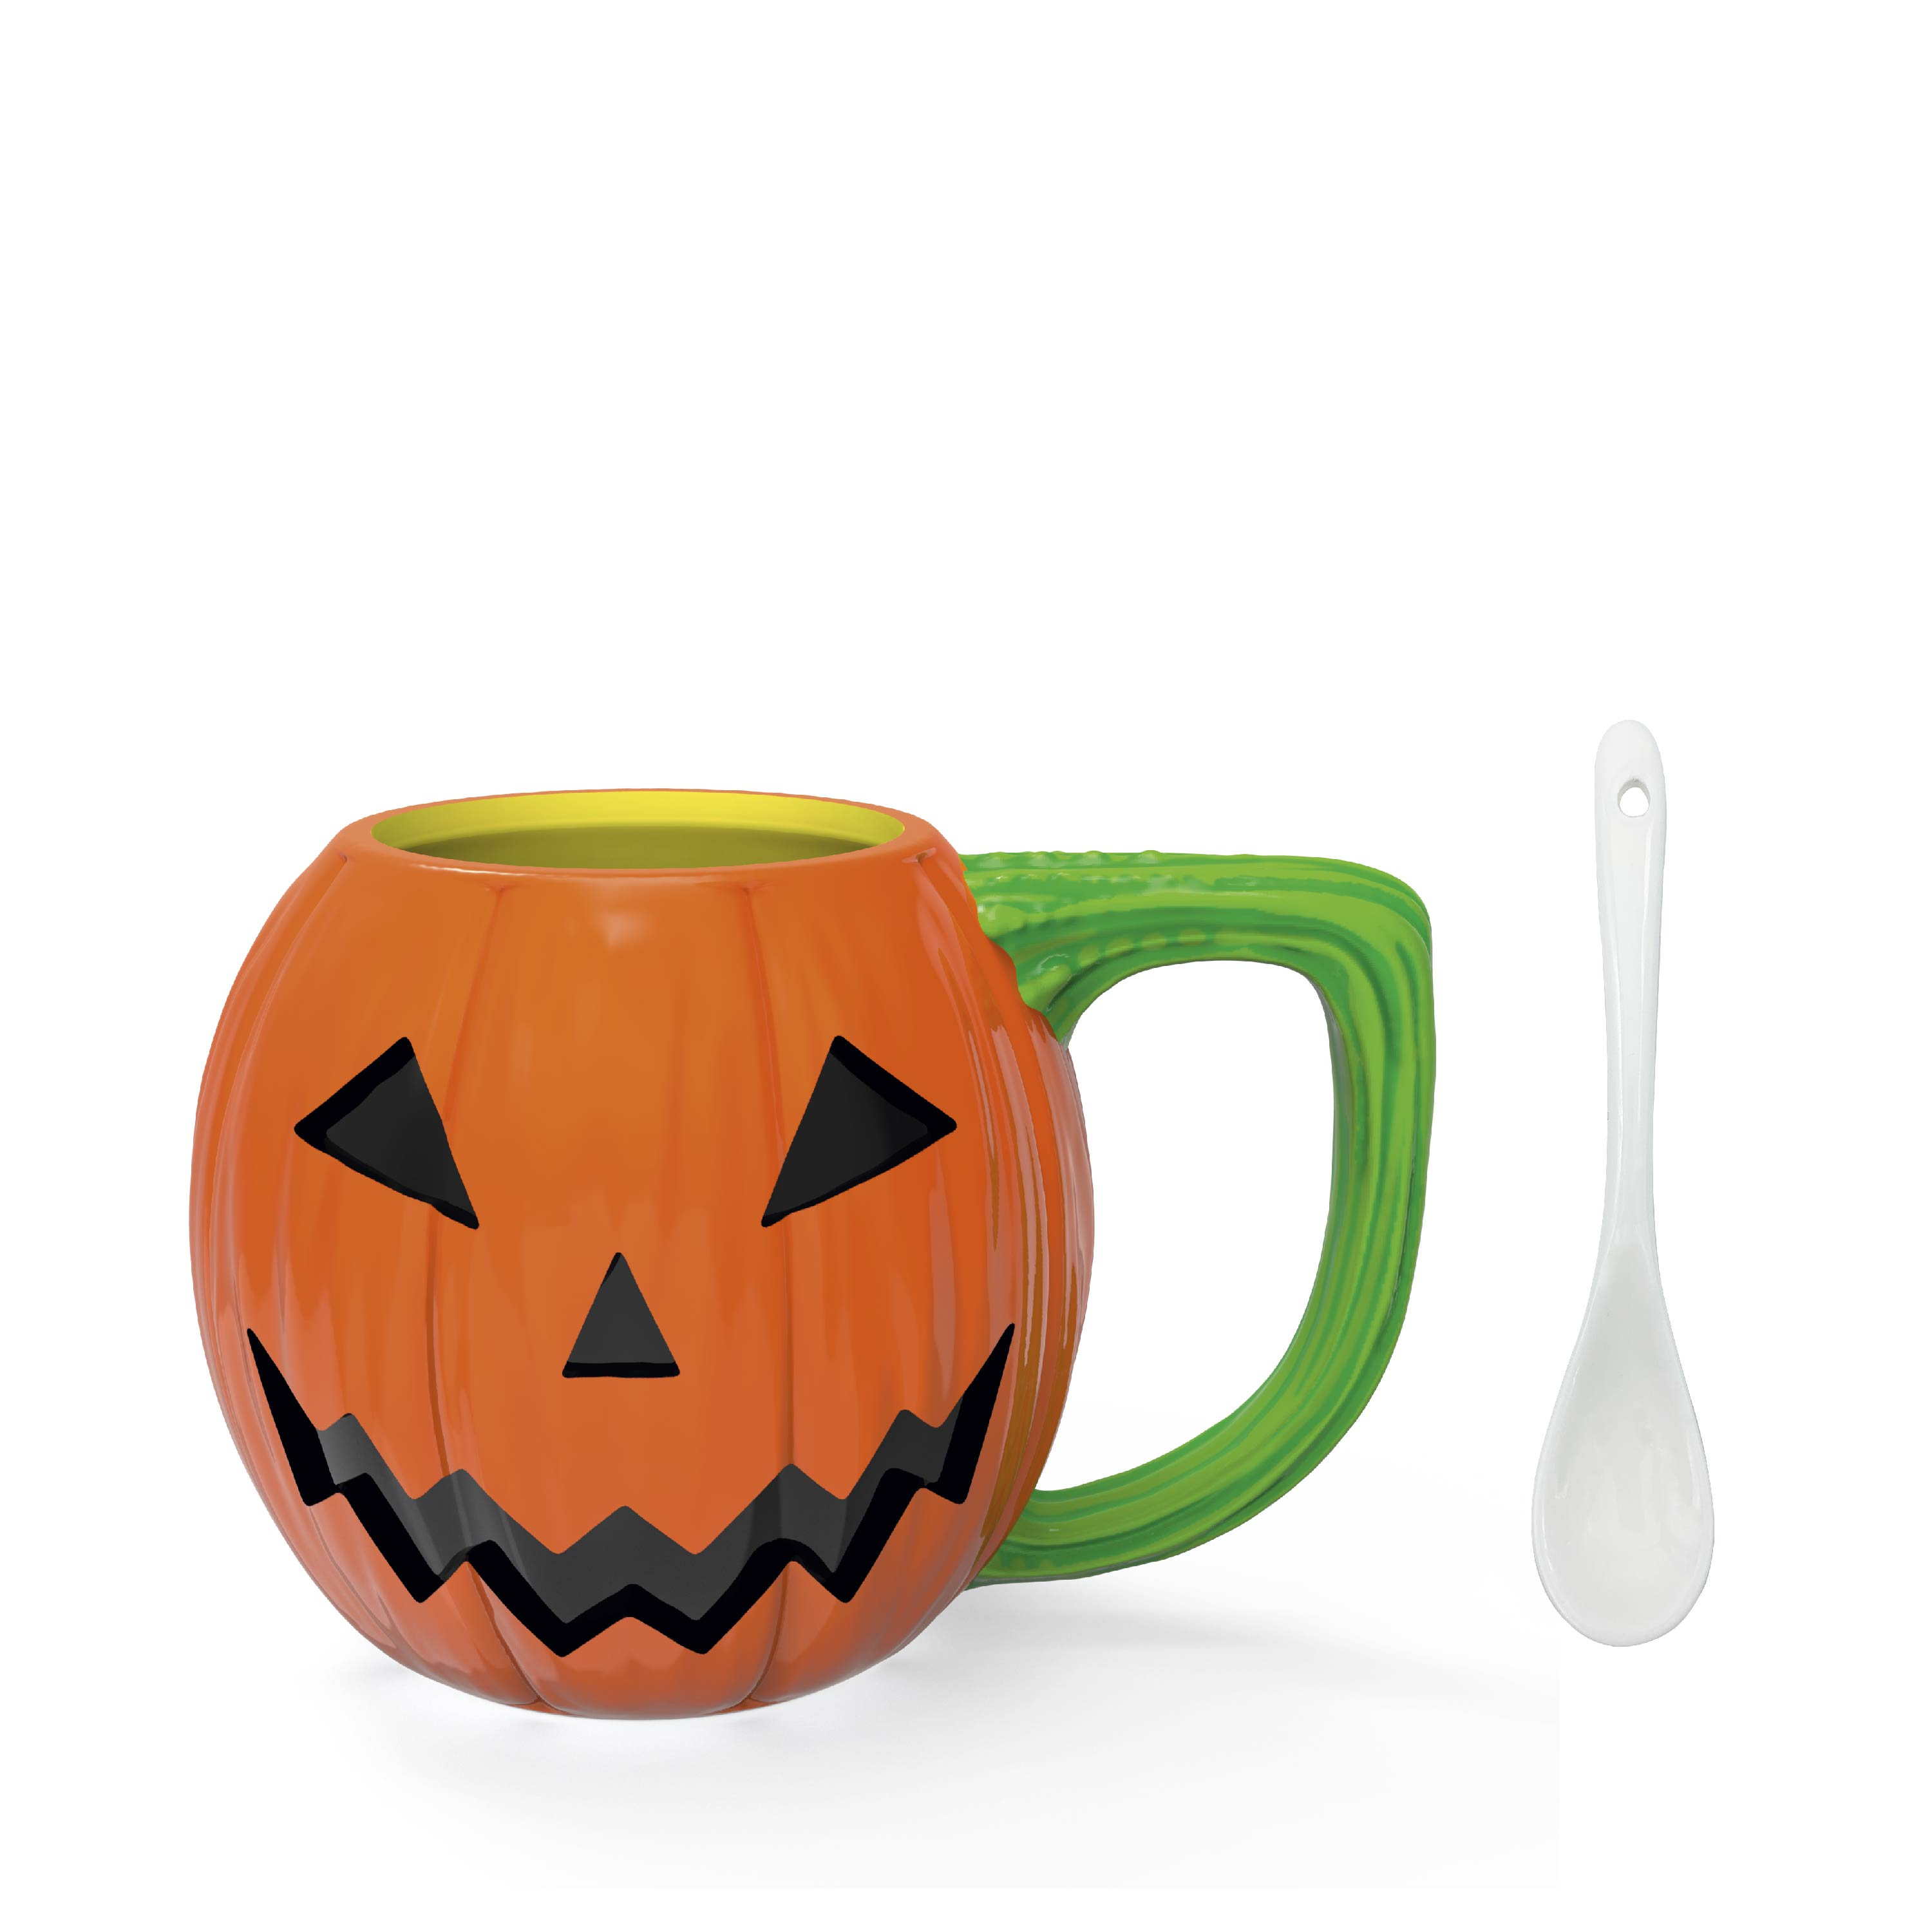 Halloween 15 ounce Coffee Mug and Spoon, Jack O' Lantern slideshow image 2